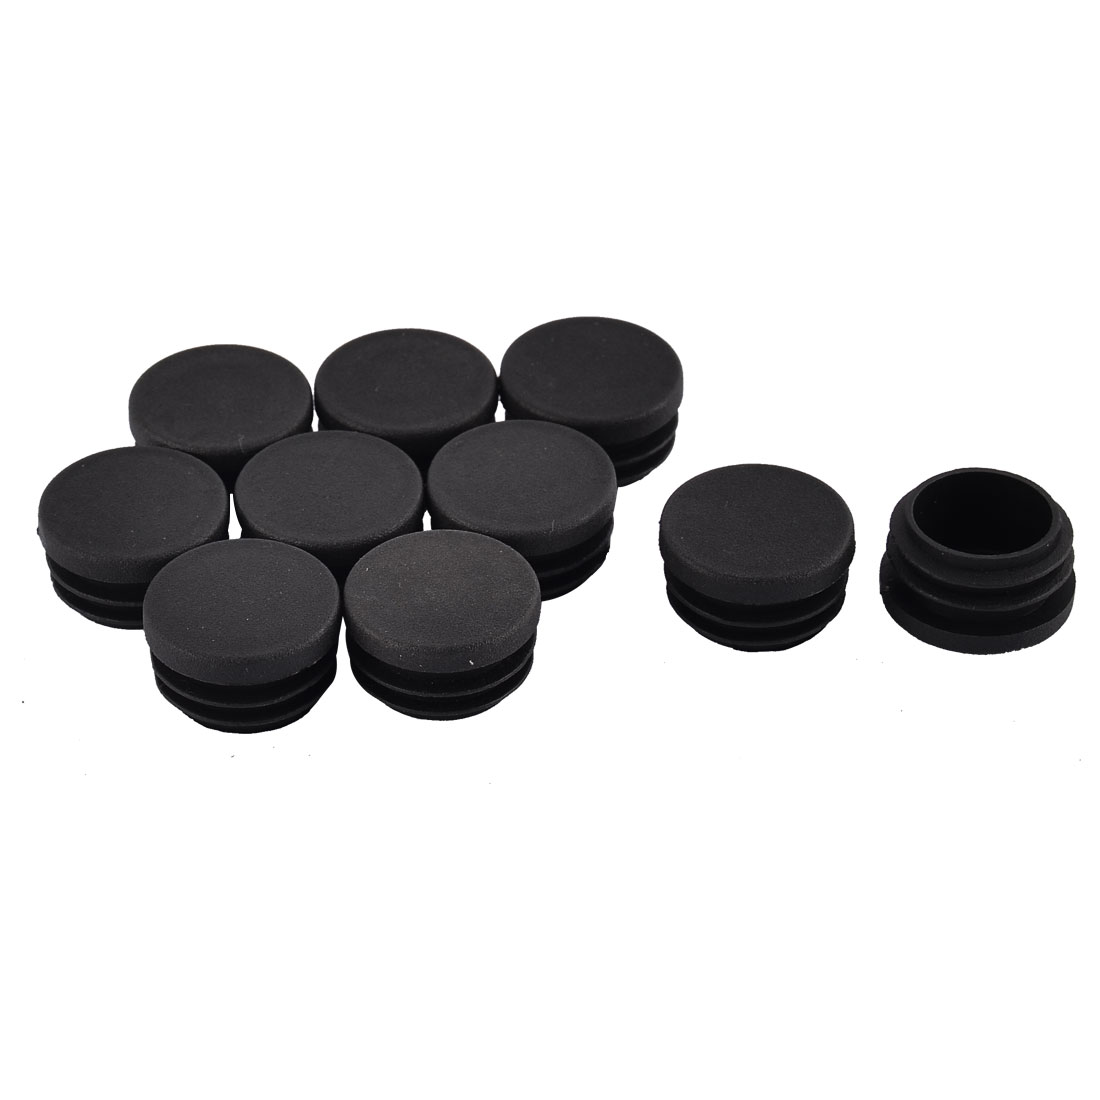 Table Chair Legs Plastic Round Tube Insert Cap Cover Protector Black 30mm Dia 10pcs